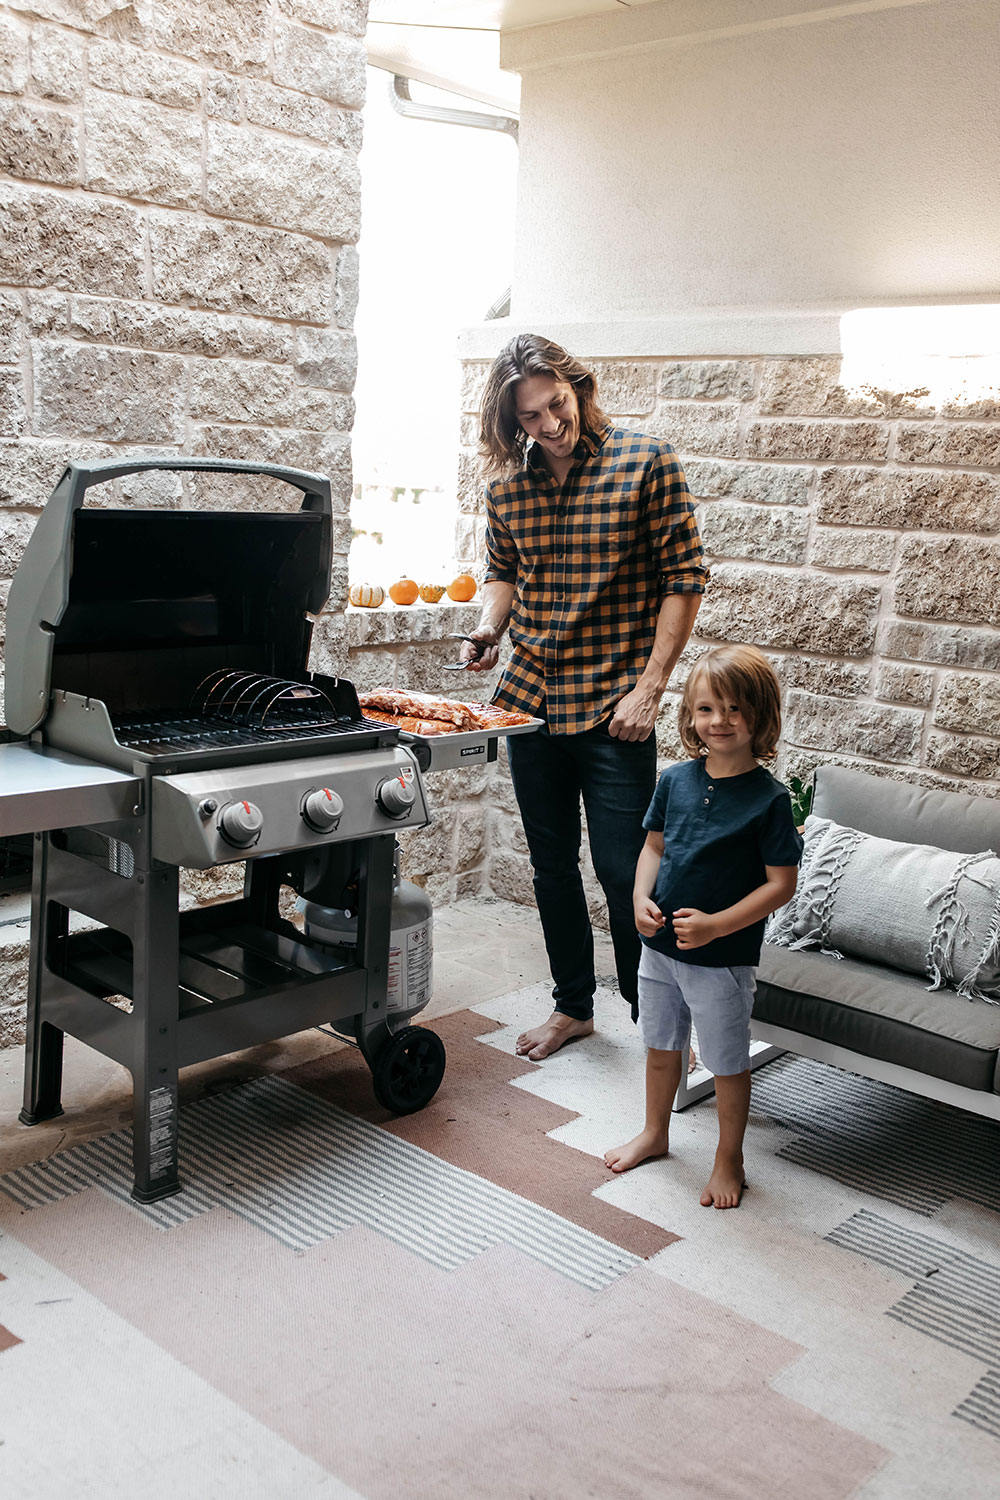 Noah and I Grilling Another Rack of Ribs